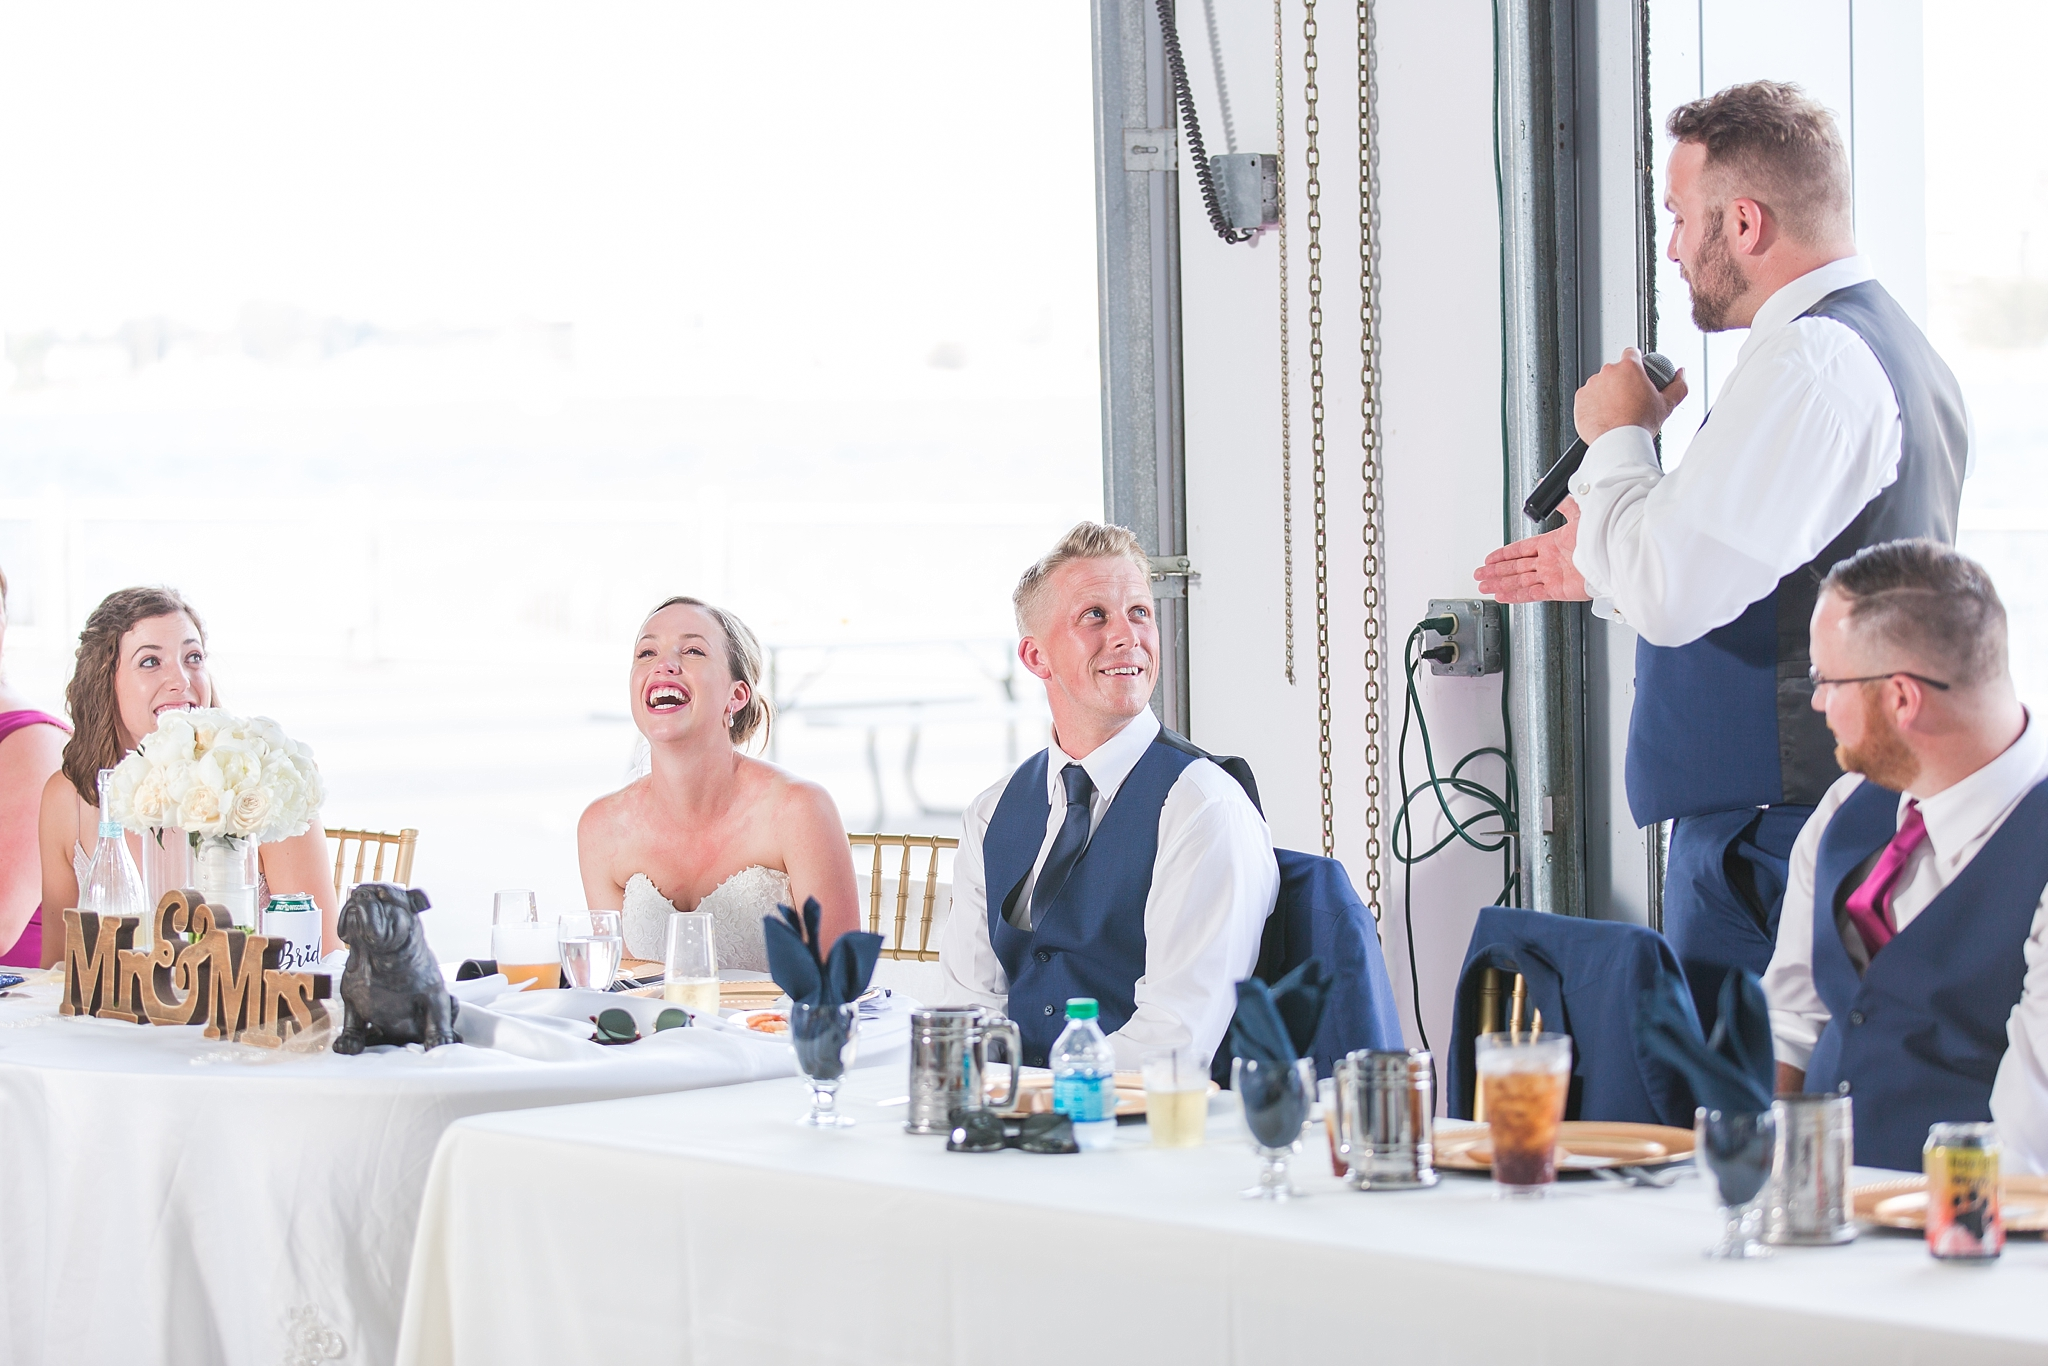 fun-nautical-wedding-photos-at-the-bean-dock-in-downtown-port-huron-michigan-by-courtney-carolyn-photography_0097.jpg